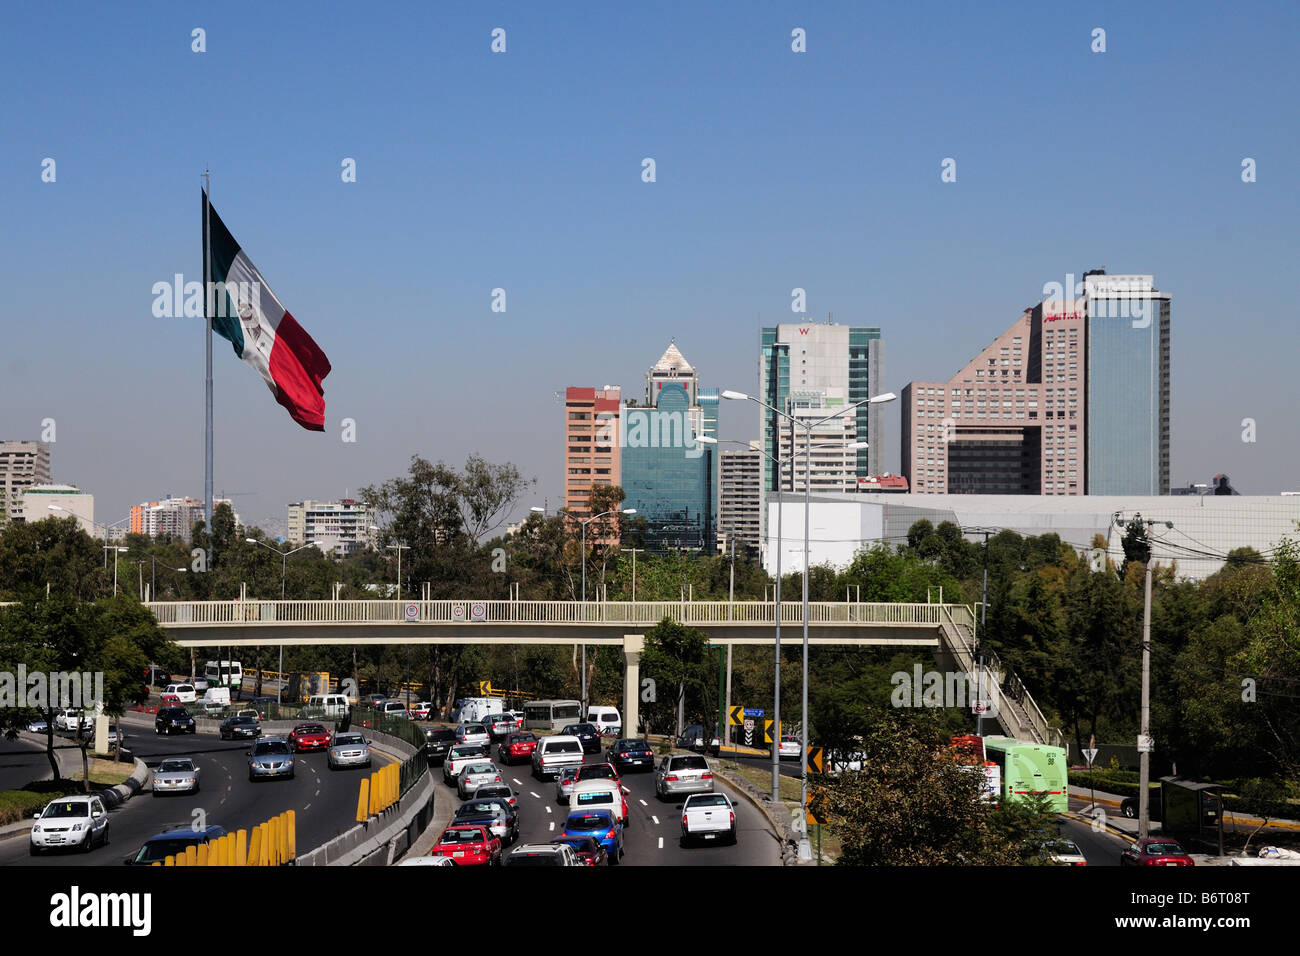 Mexico City Skyline Stock Photos & Mexico City Skyline